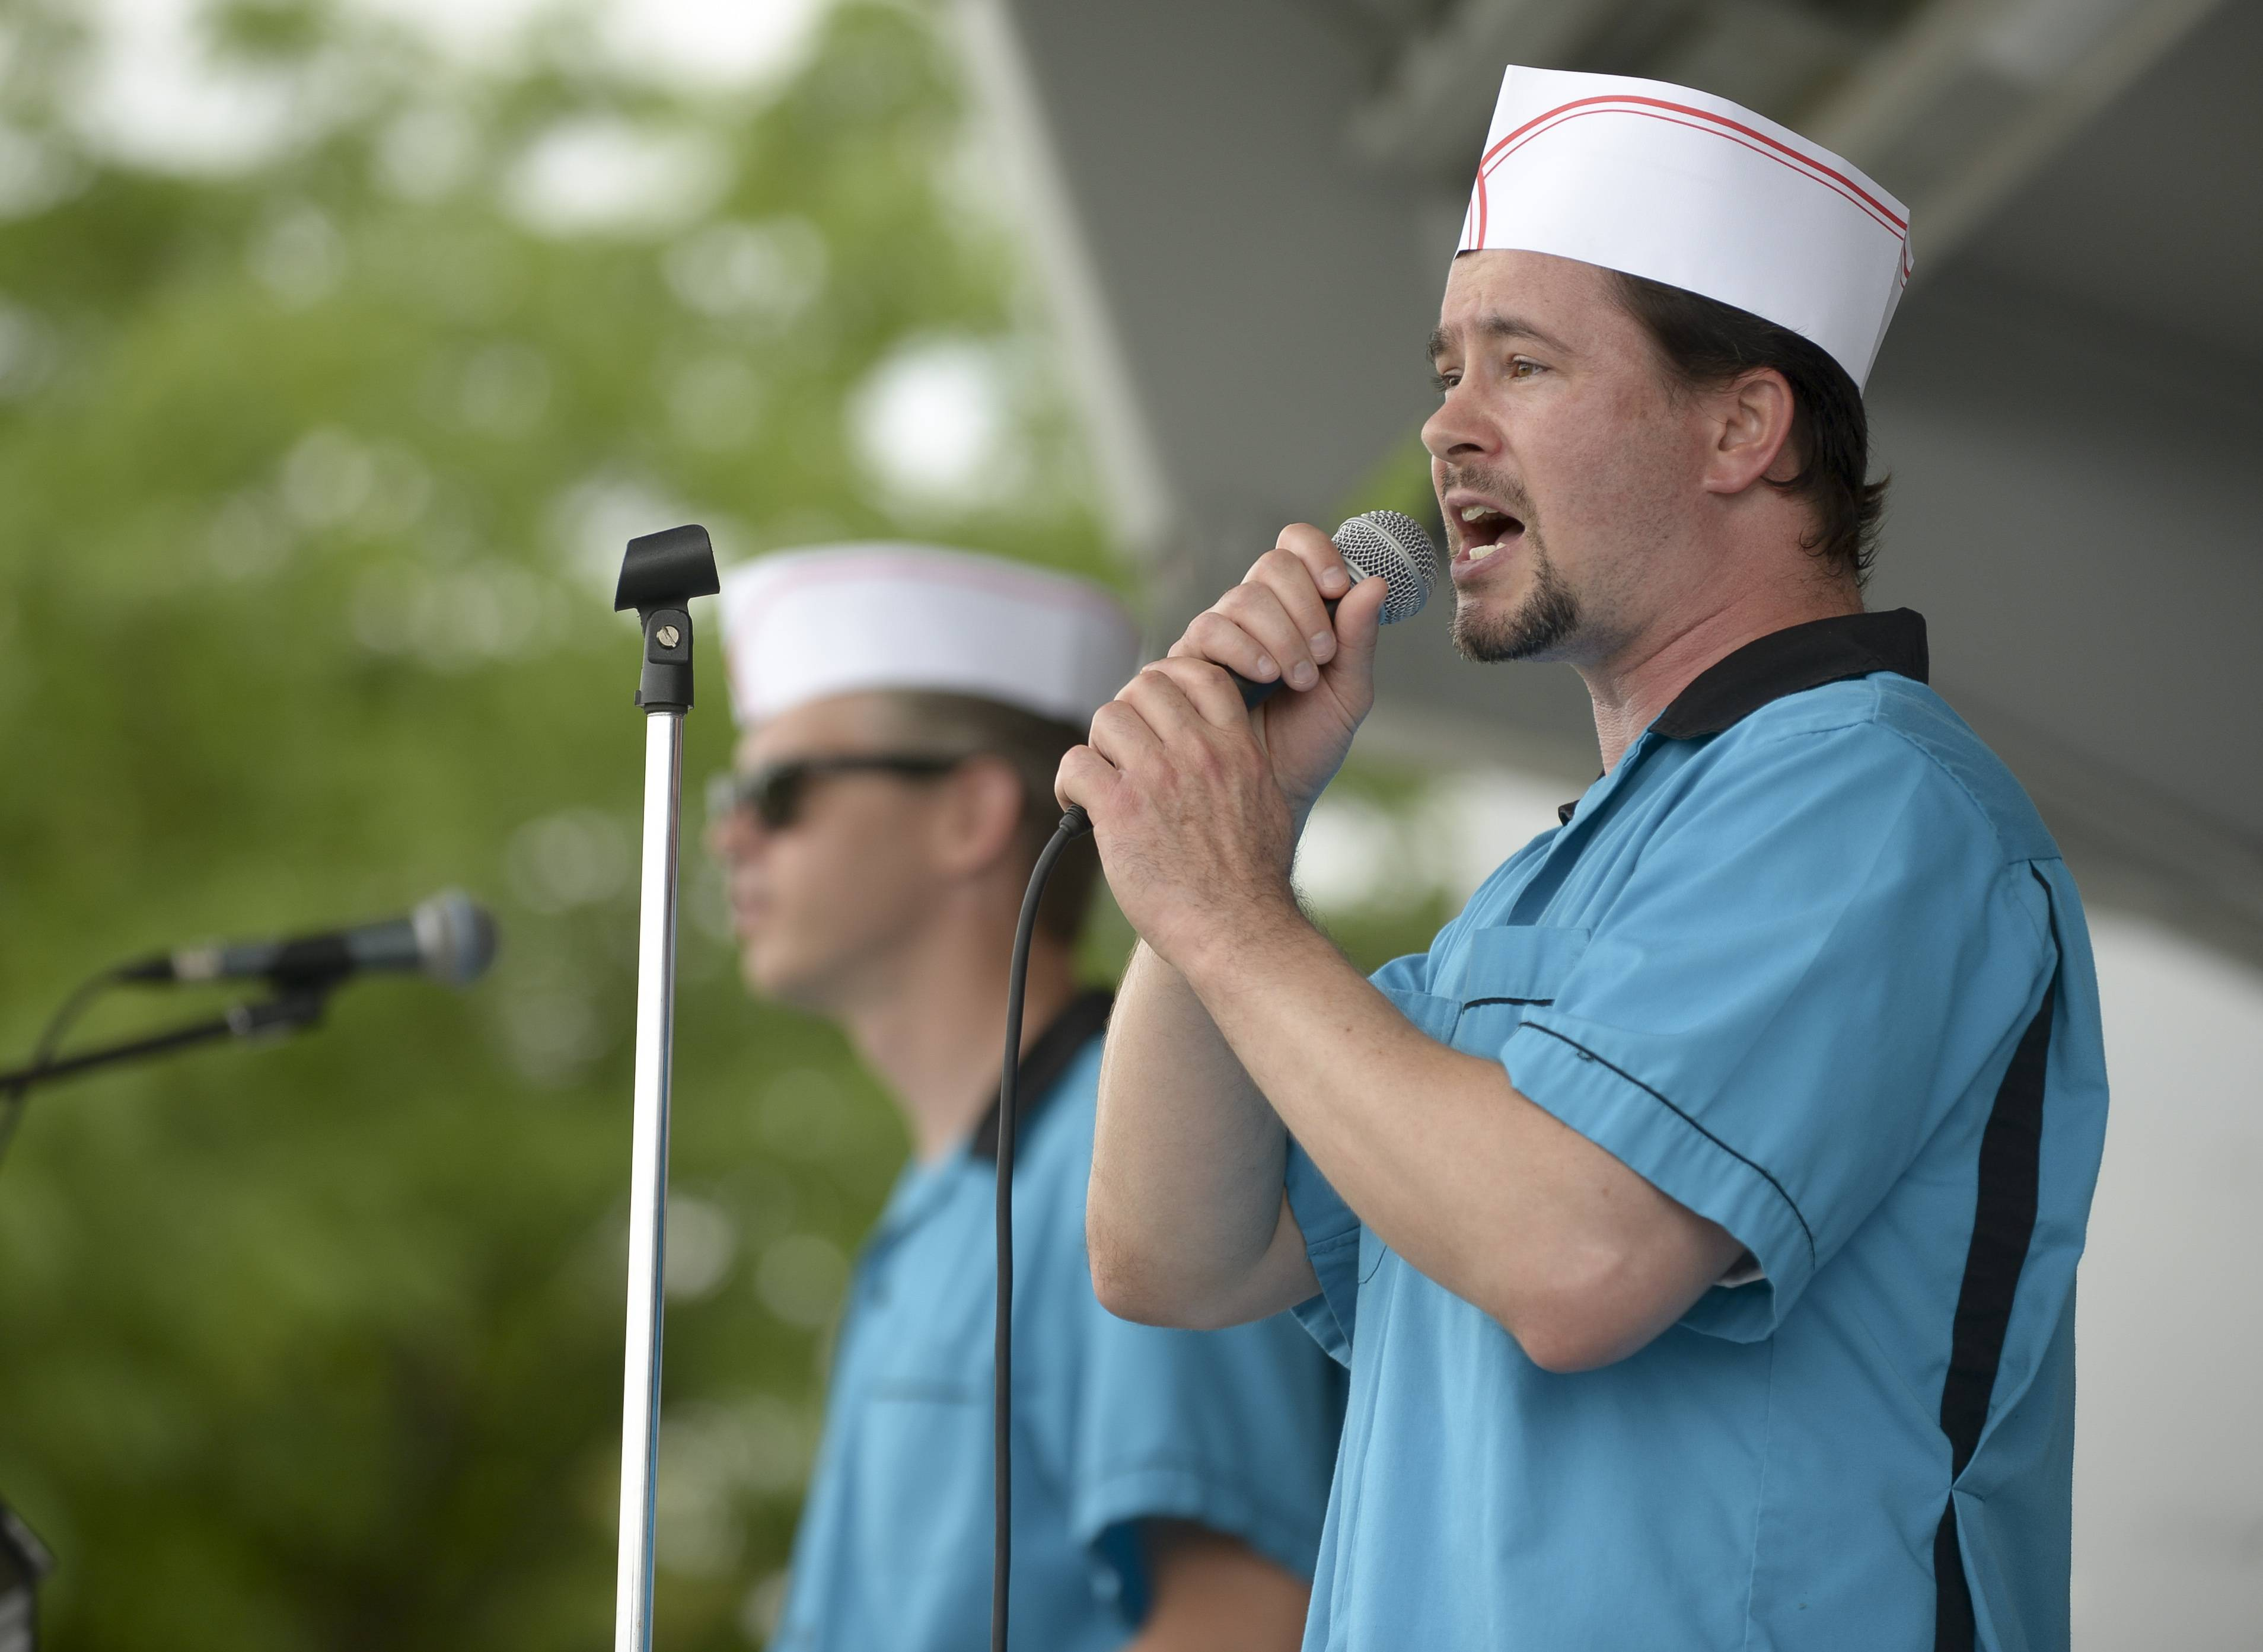 Jon Kostal and Greg Barnett, right, of the Ice Cream Vendors perform as part of Naperville Park District's Children's Lunch Hour Entertainment series.